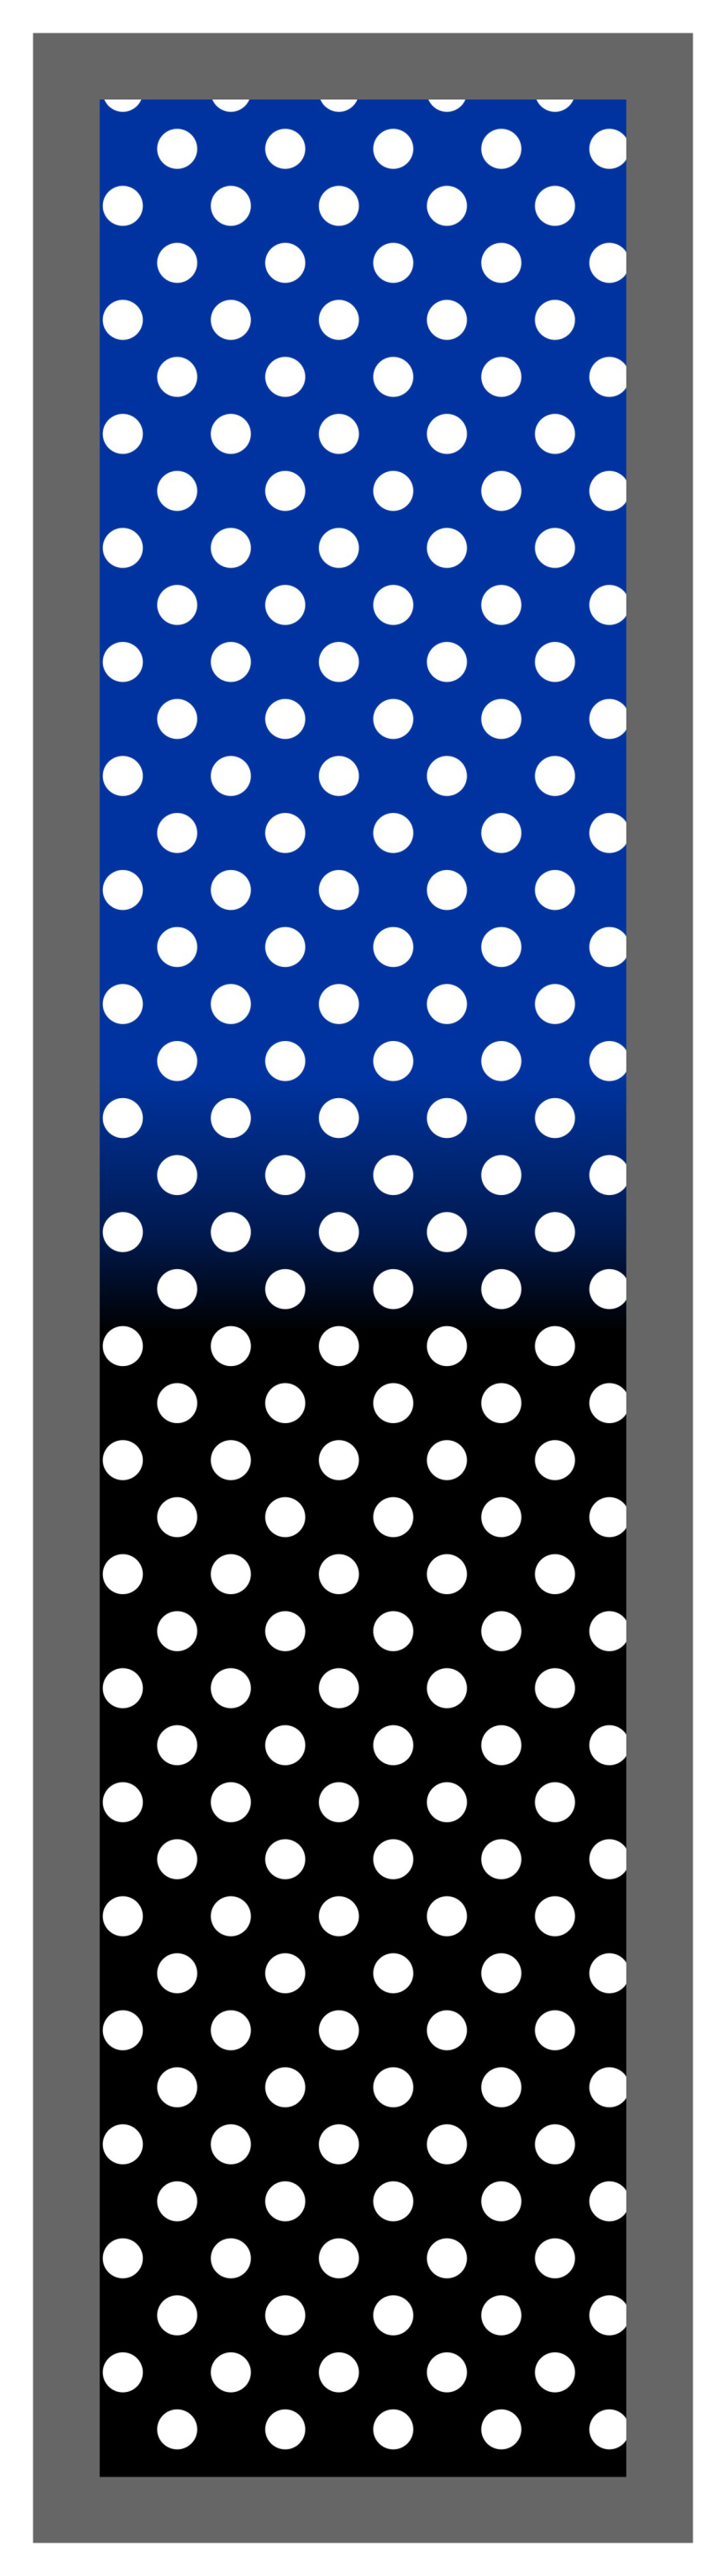 Royal Blue-Black Ombre Polka Dots